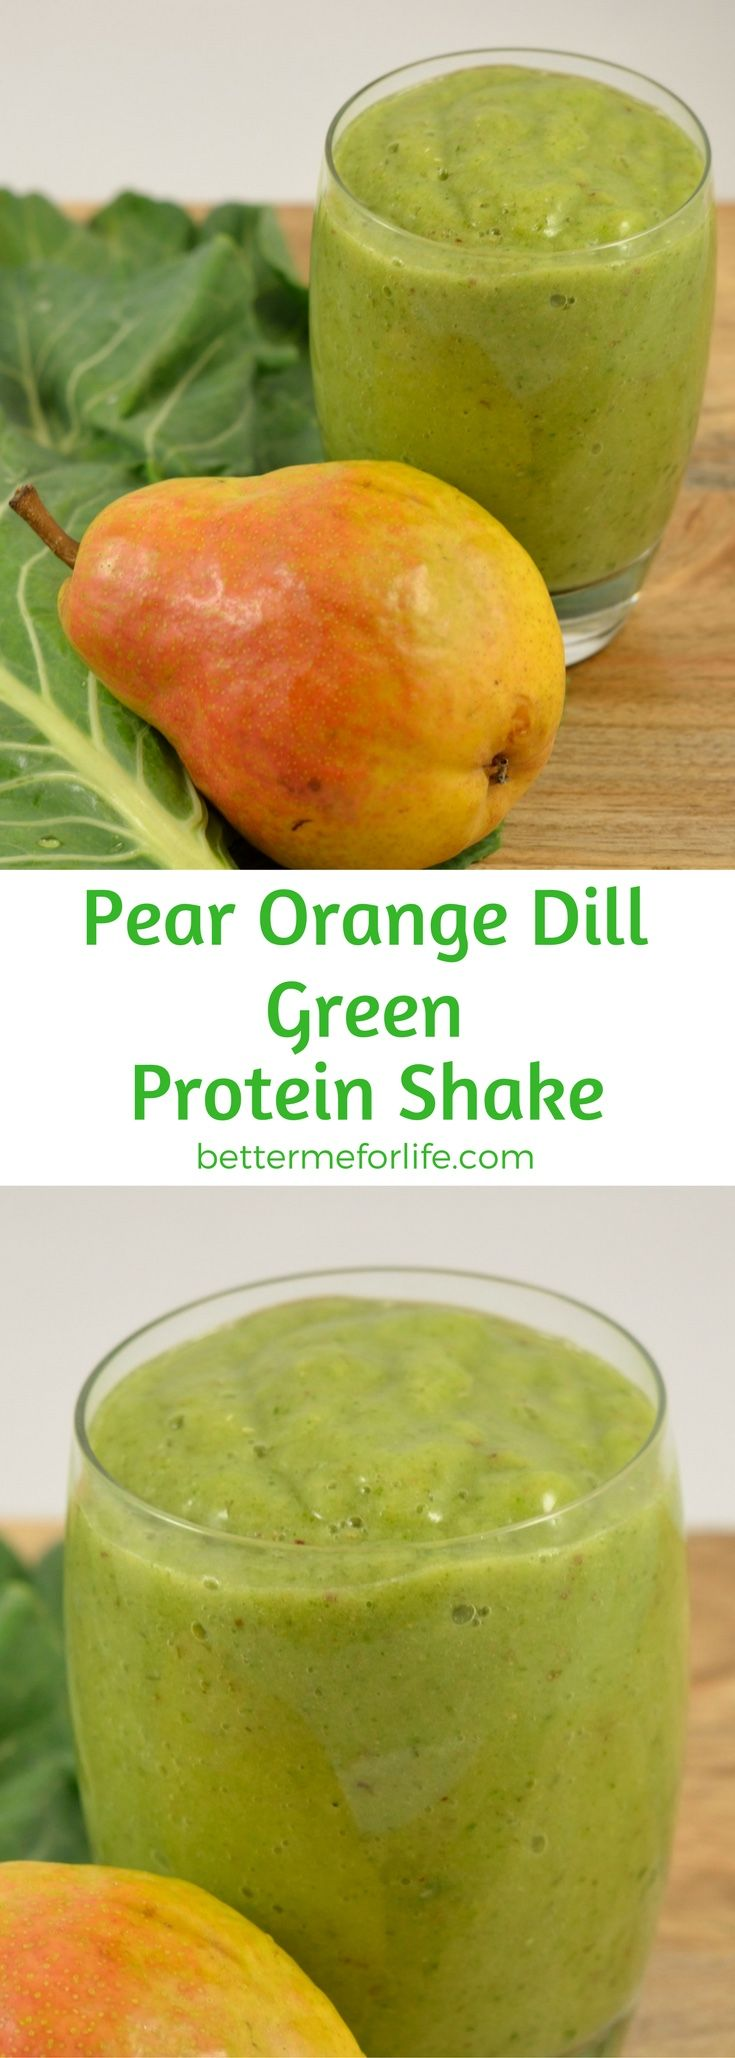 The flavor of this pear orange dill green protein shake is sweet and tart. It's a wonderful addition for anyone who is trying to add more greens to their diet. Find the recipe on BetterMeforLife.com | green protein shake recipes | green protein shakes | healthy green protein shakes | green protein shakes for weight loss | green protein shake recipes weight loss | green protein shake recipes diet #greenproteinshakes #greenproteinshakerecipes #proteinpowder #greenproteinshake…